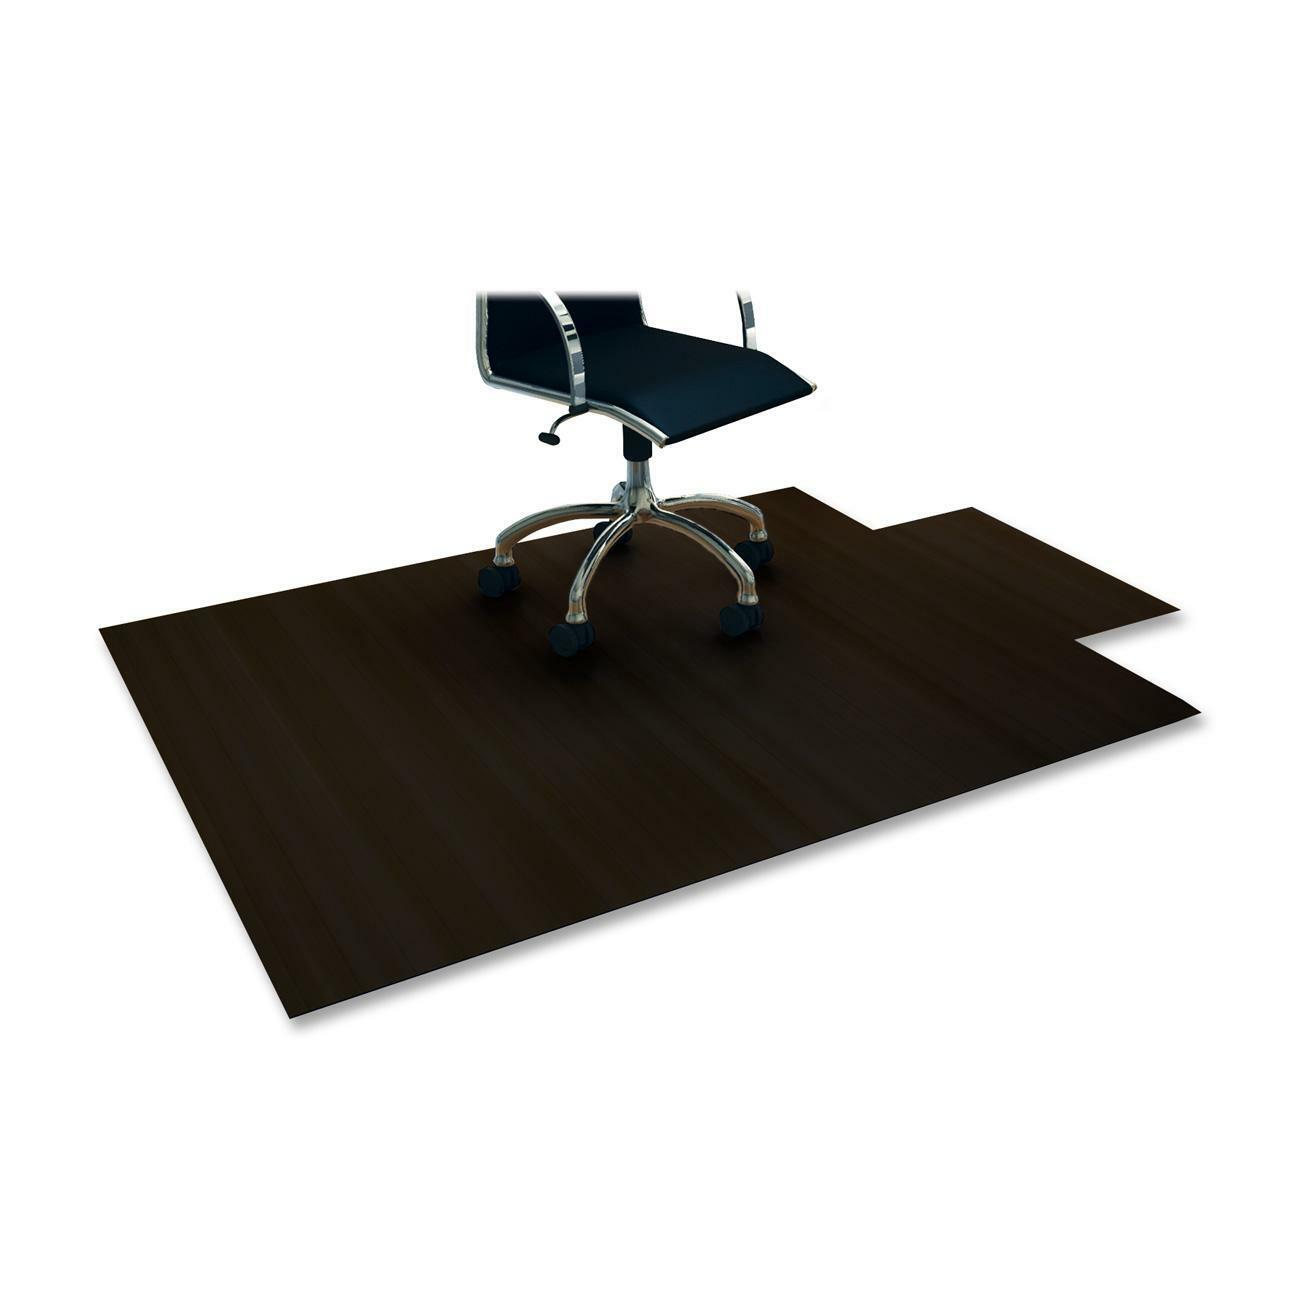 Lip Chair Kamloops Office Systems Furniture Chairs Chair Mats